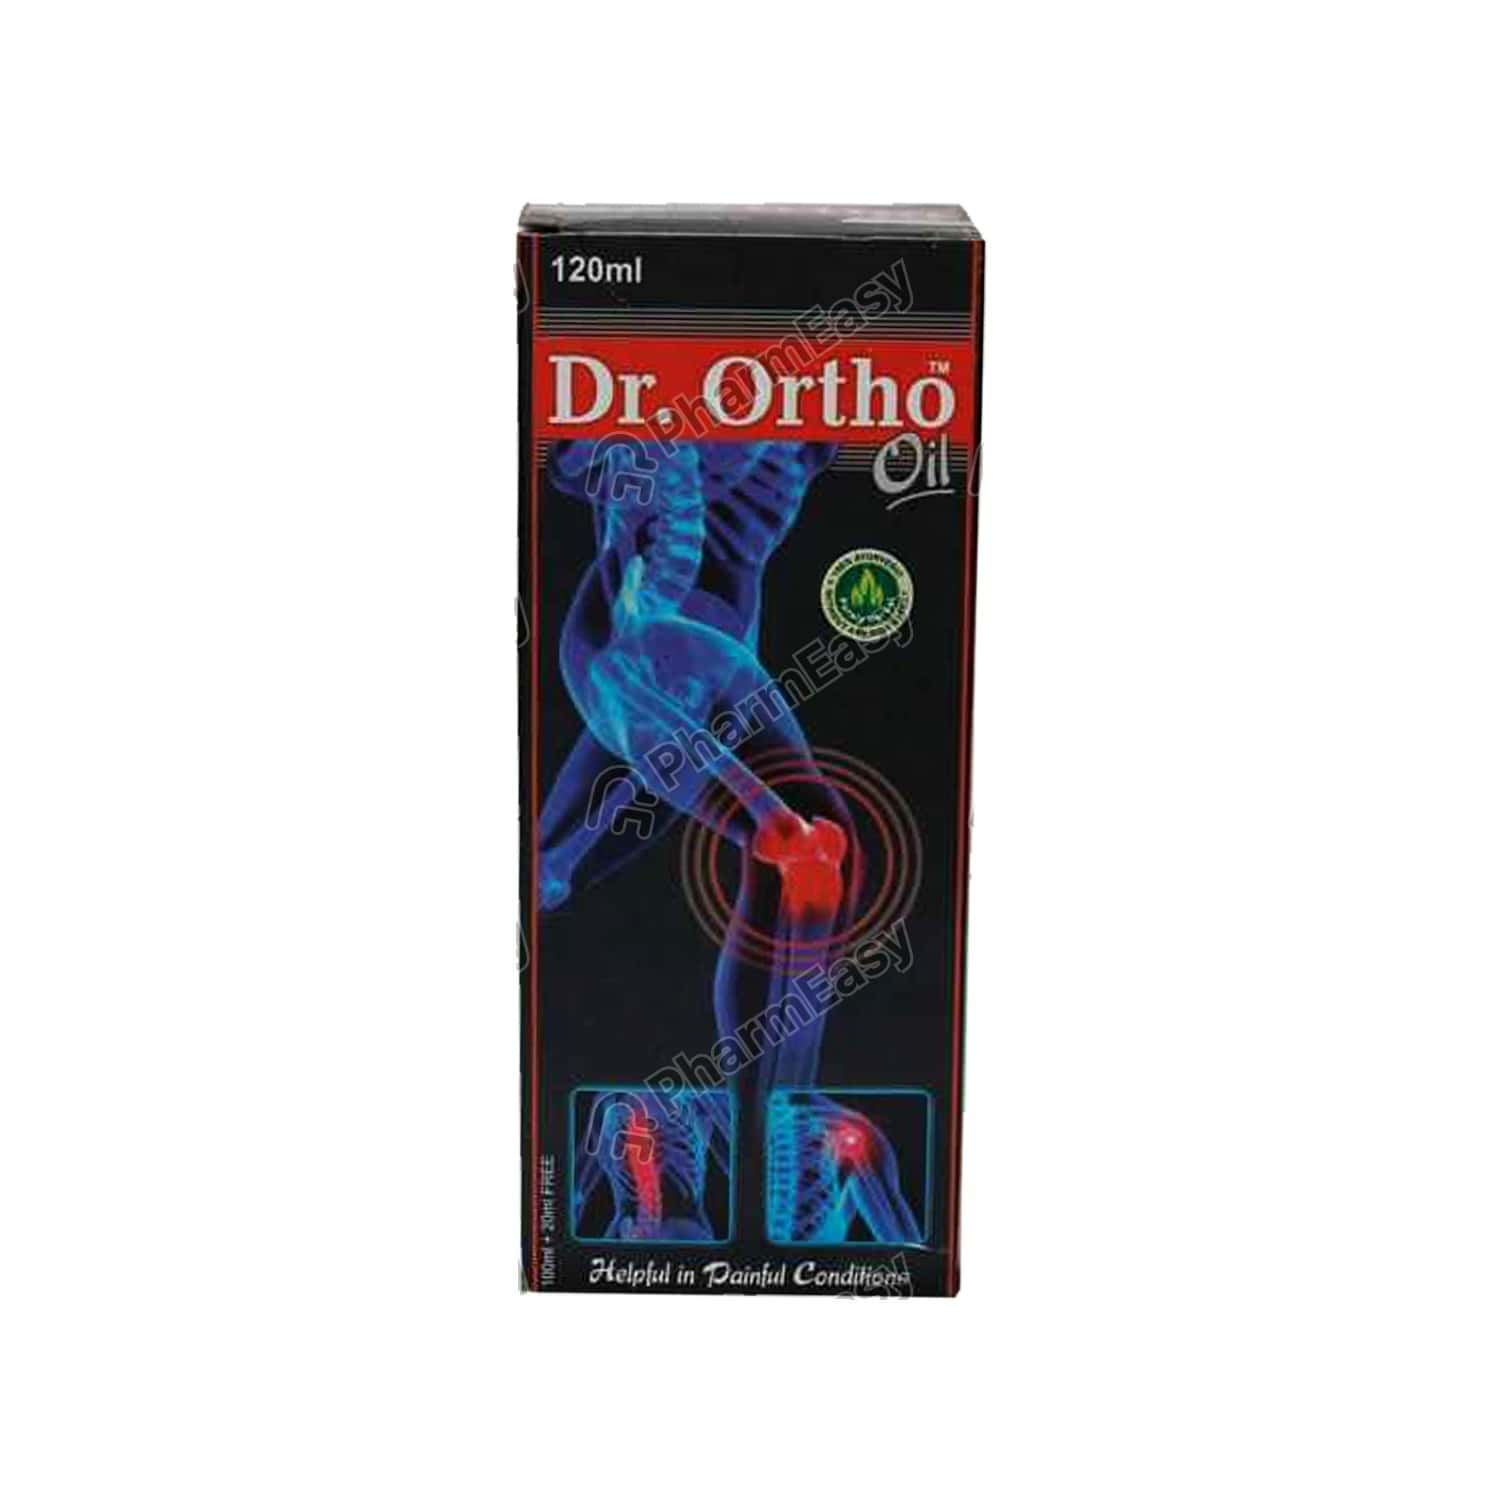 Dr.ortho Oil - 120ml